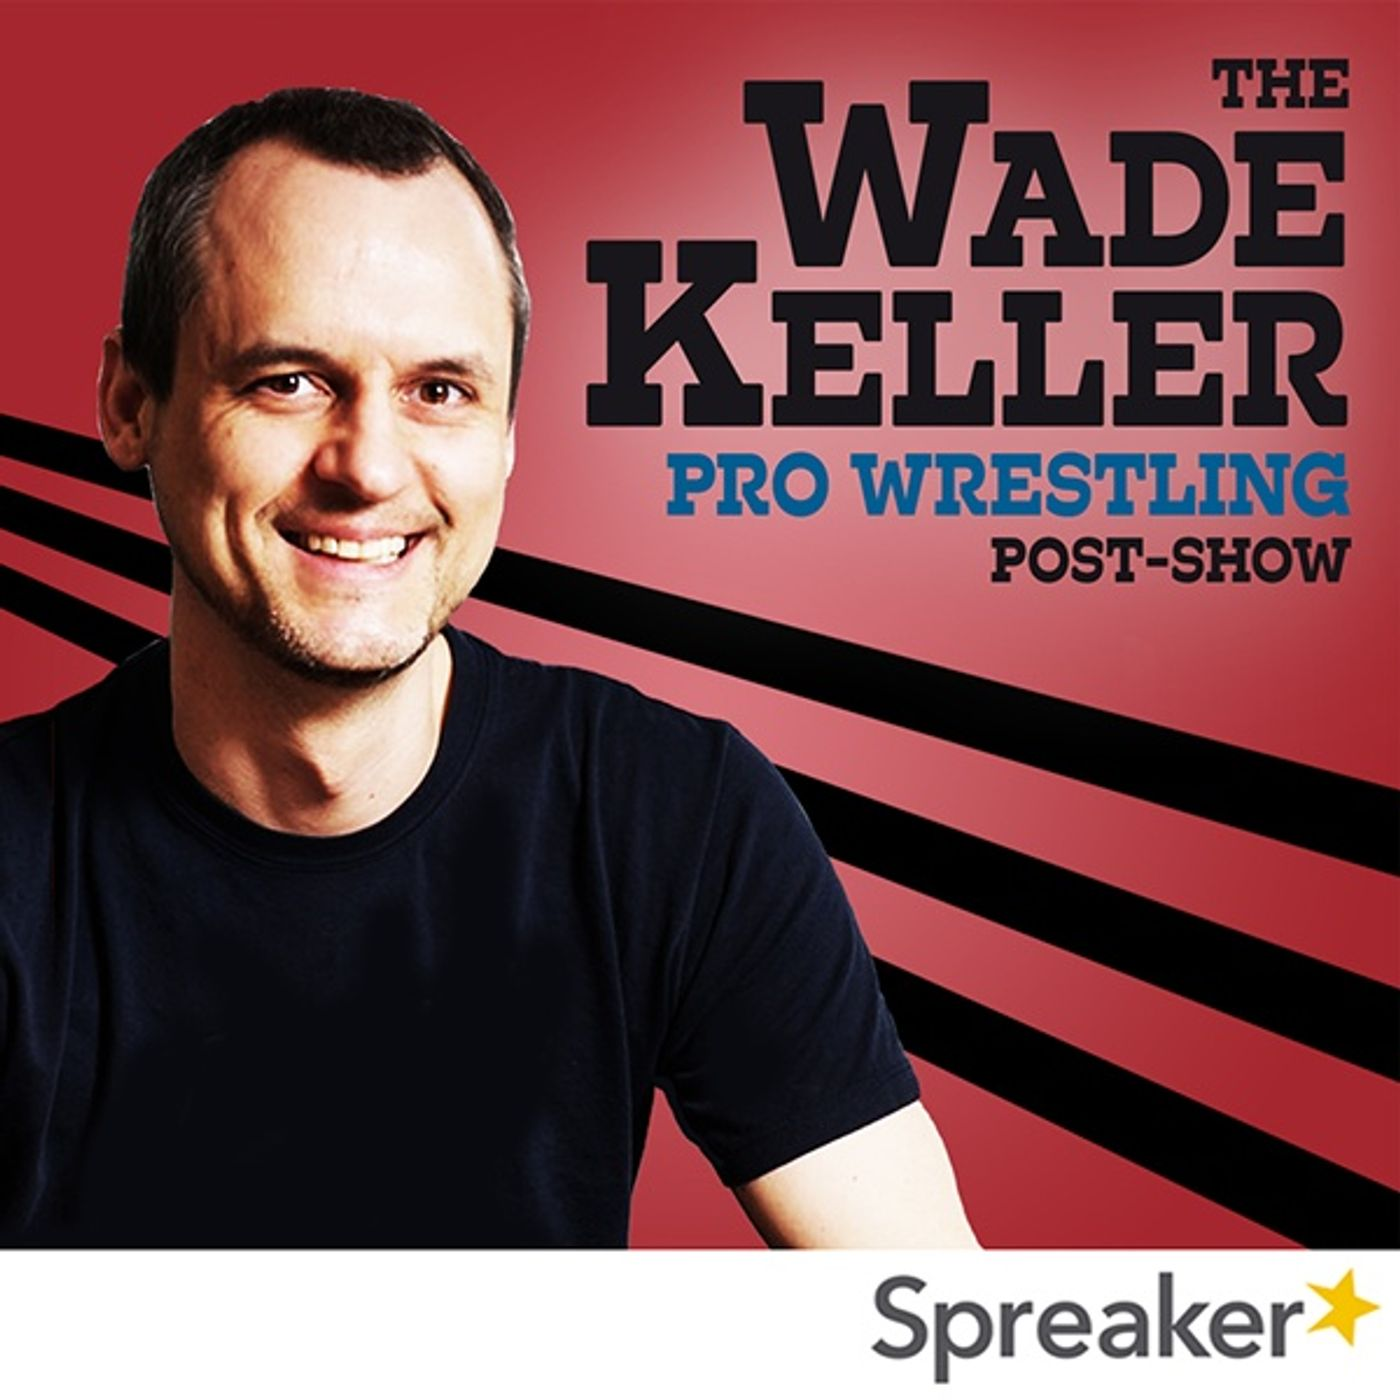 WKPWP - New Mailbag & AEW Dynamite Flashback: Keller responds to Mailbag topics on Raw, Roman, more, then Dynamite Post-Show from 1 Year Ago